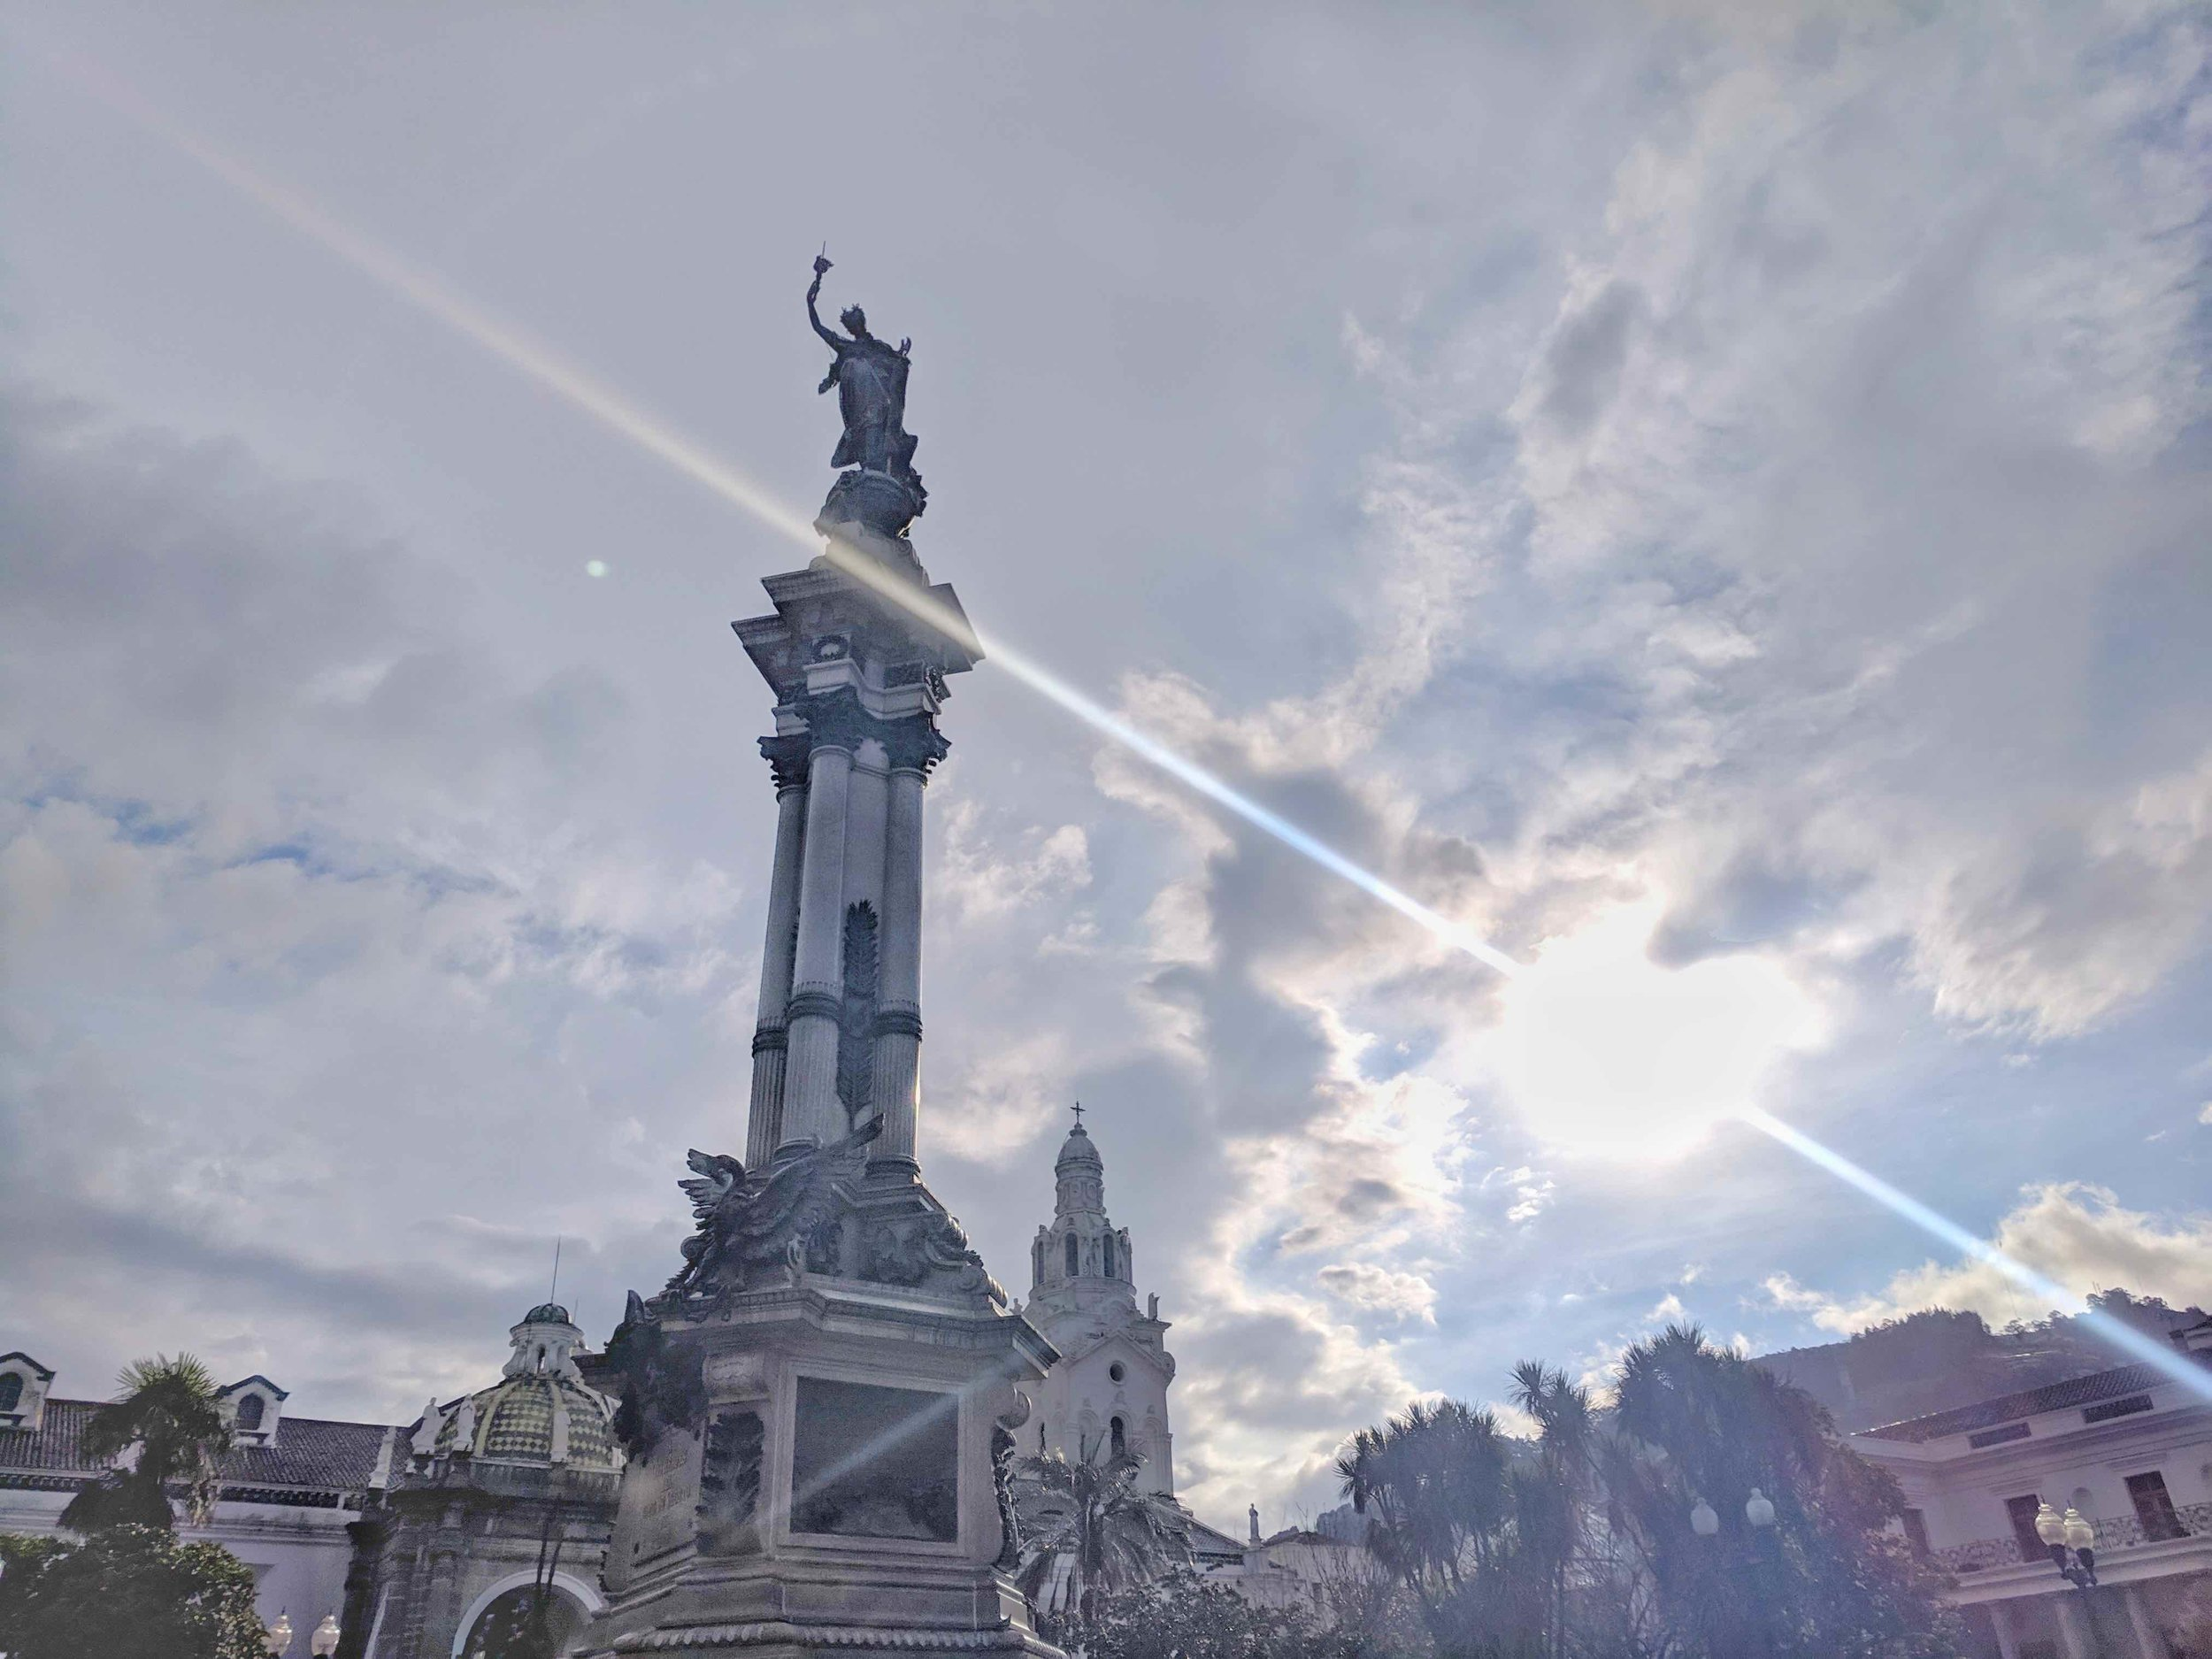 My attempt at an artsy pic of the center statue, el Monumento a la Independencia, in the park with the sun gleaming behind it